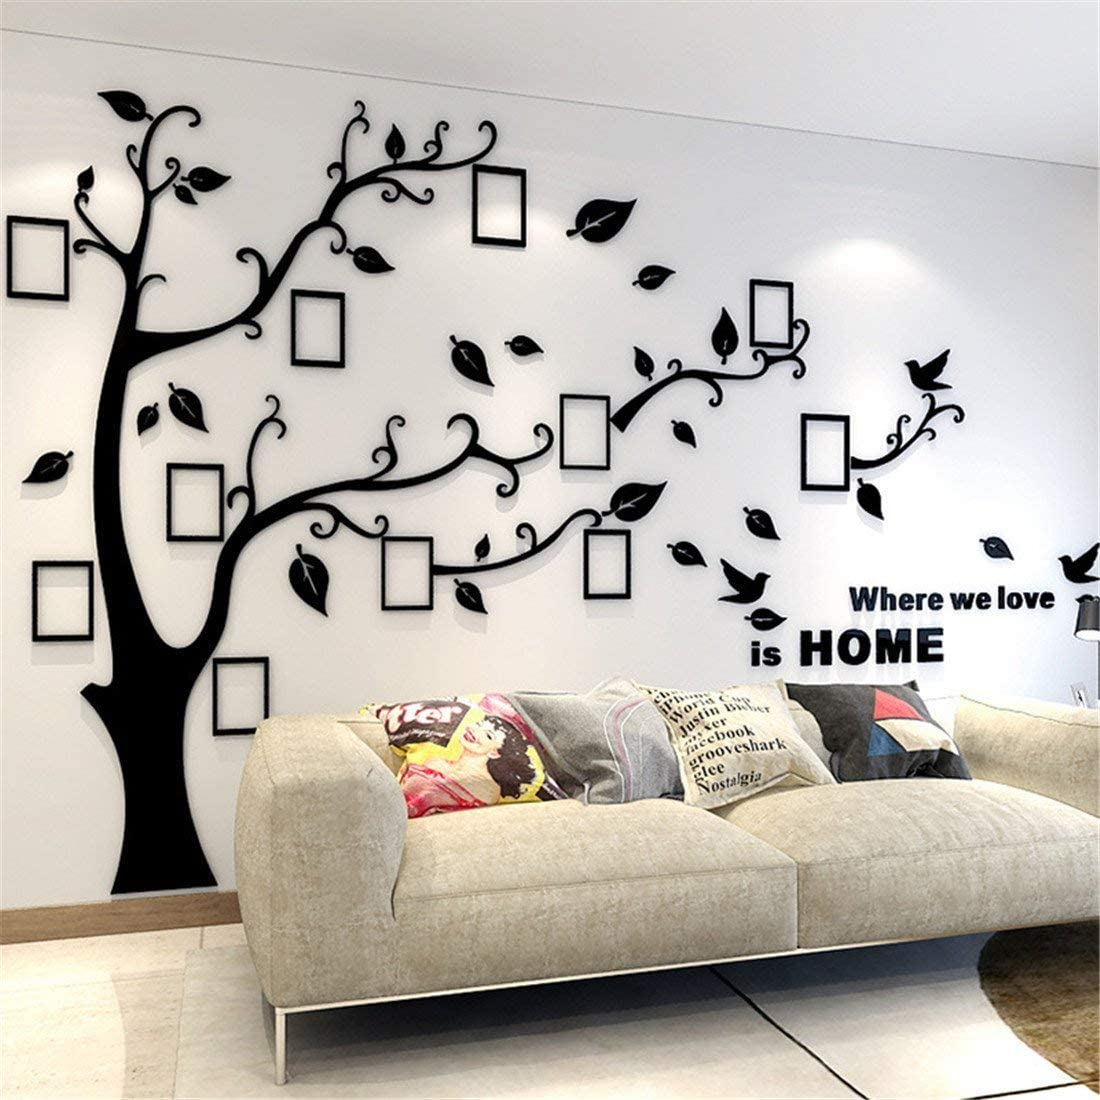 Unitendo 3D Acrylic Wall Stickers Photo Frames FamilyTree Wall Decal Easy to Install &Apply DIY Photo Gallery Frame Decor Sticker Home Art Decor (Black Leaves-Left, XL)